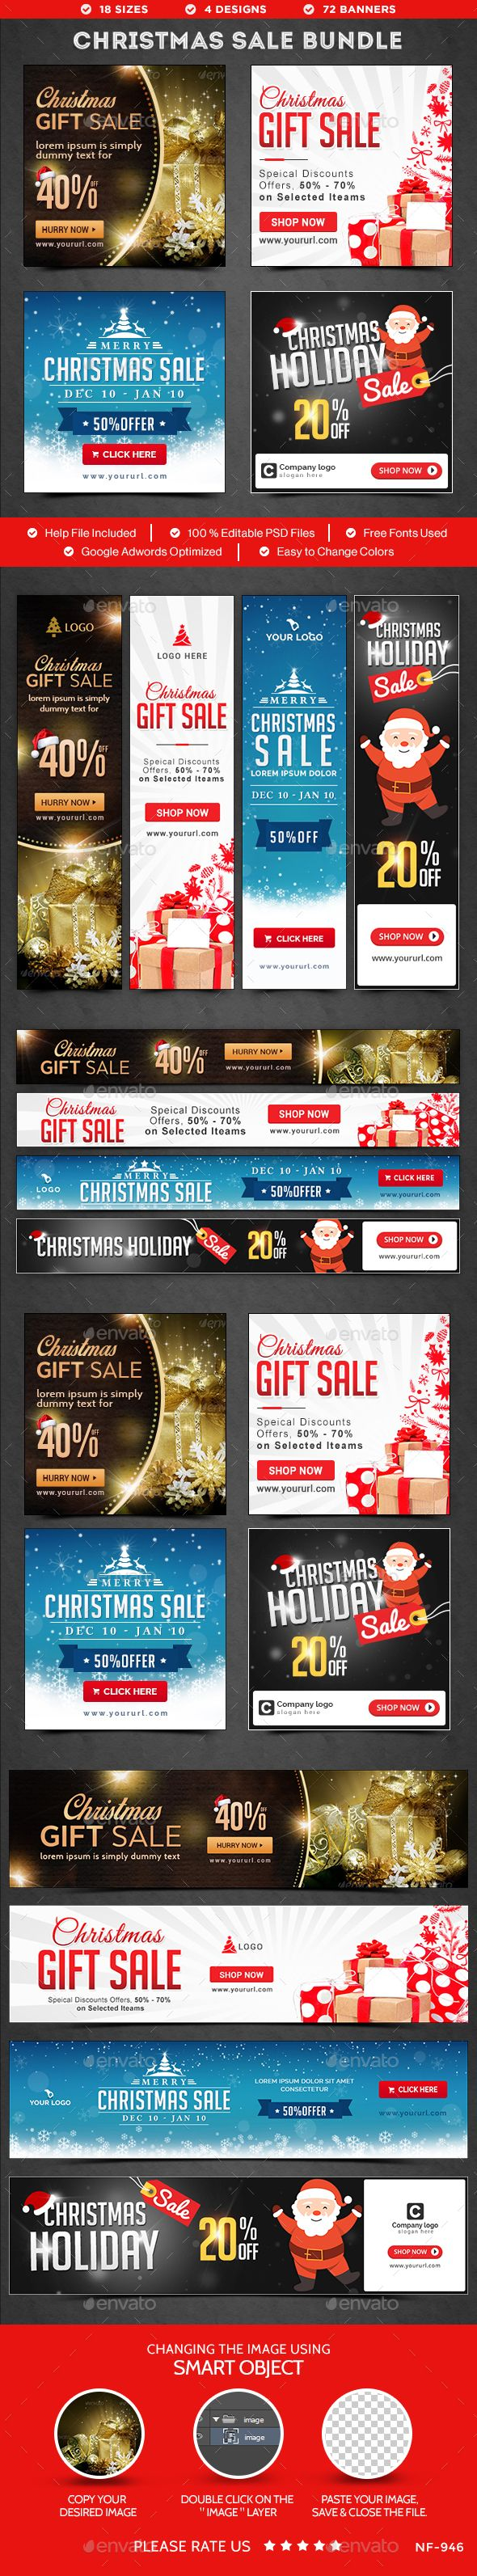 Christmas Sale Web Banners Bundle - 4 Sets Templates PSD #design Download: http://graphicriver.net/item/christmas-sale-banners-bundle-4-sets/14196546?ref=ksioks